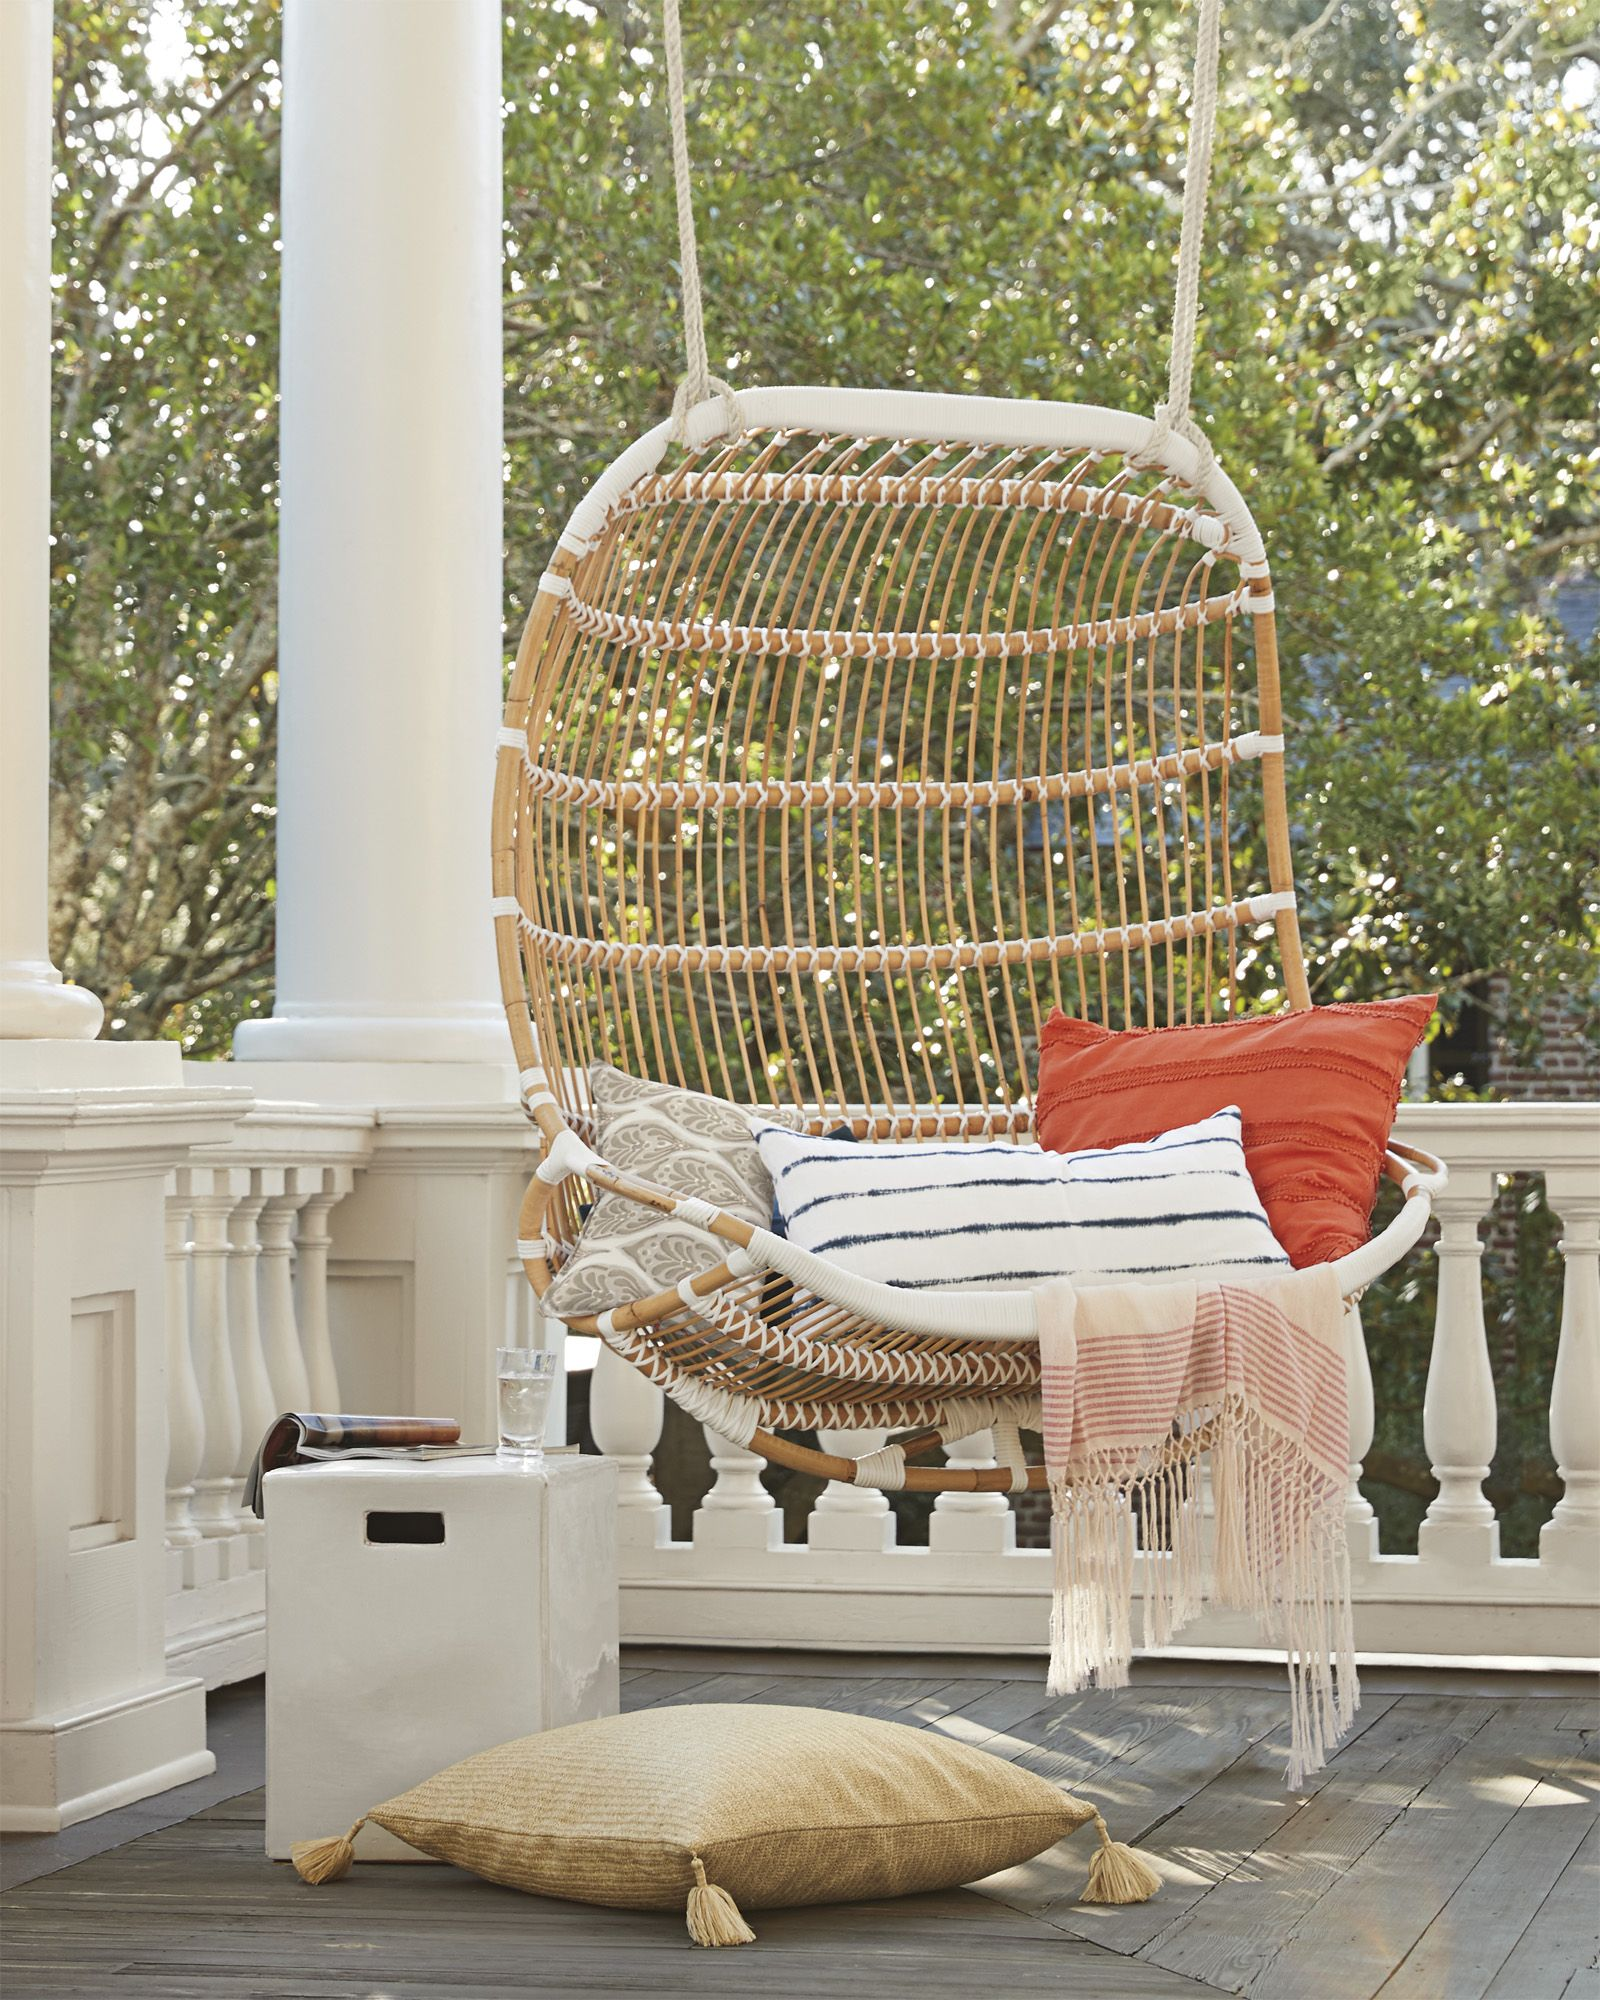 Double Hanging Rattan Chair Porch Swing Chair Porch Chairs Hanging Rattan Chair